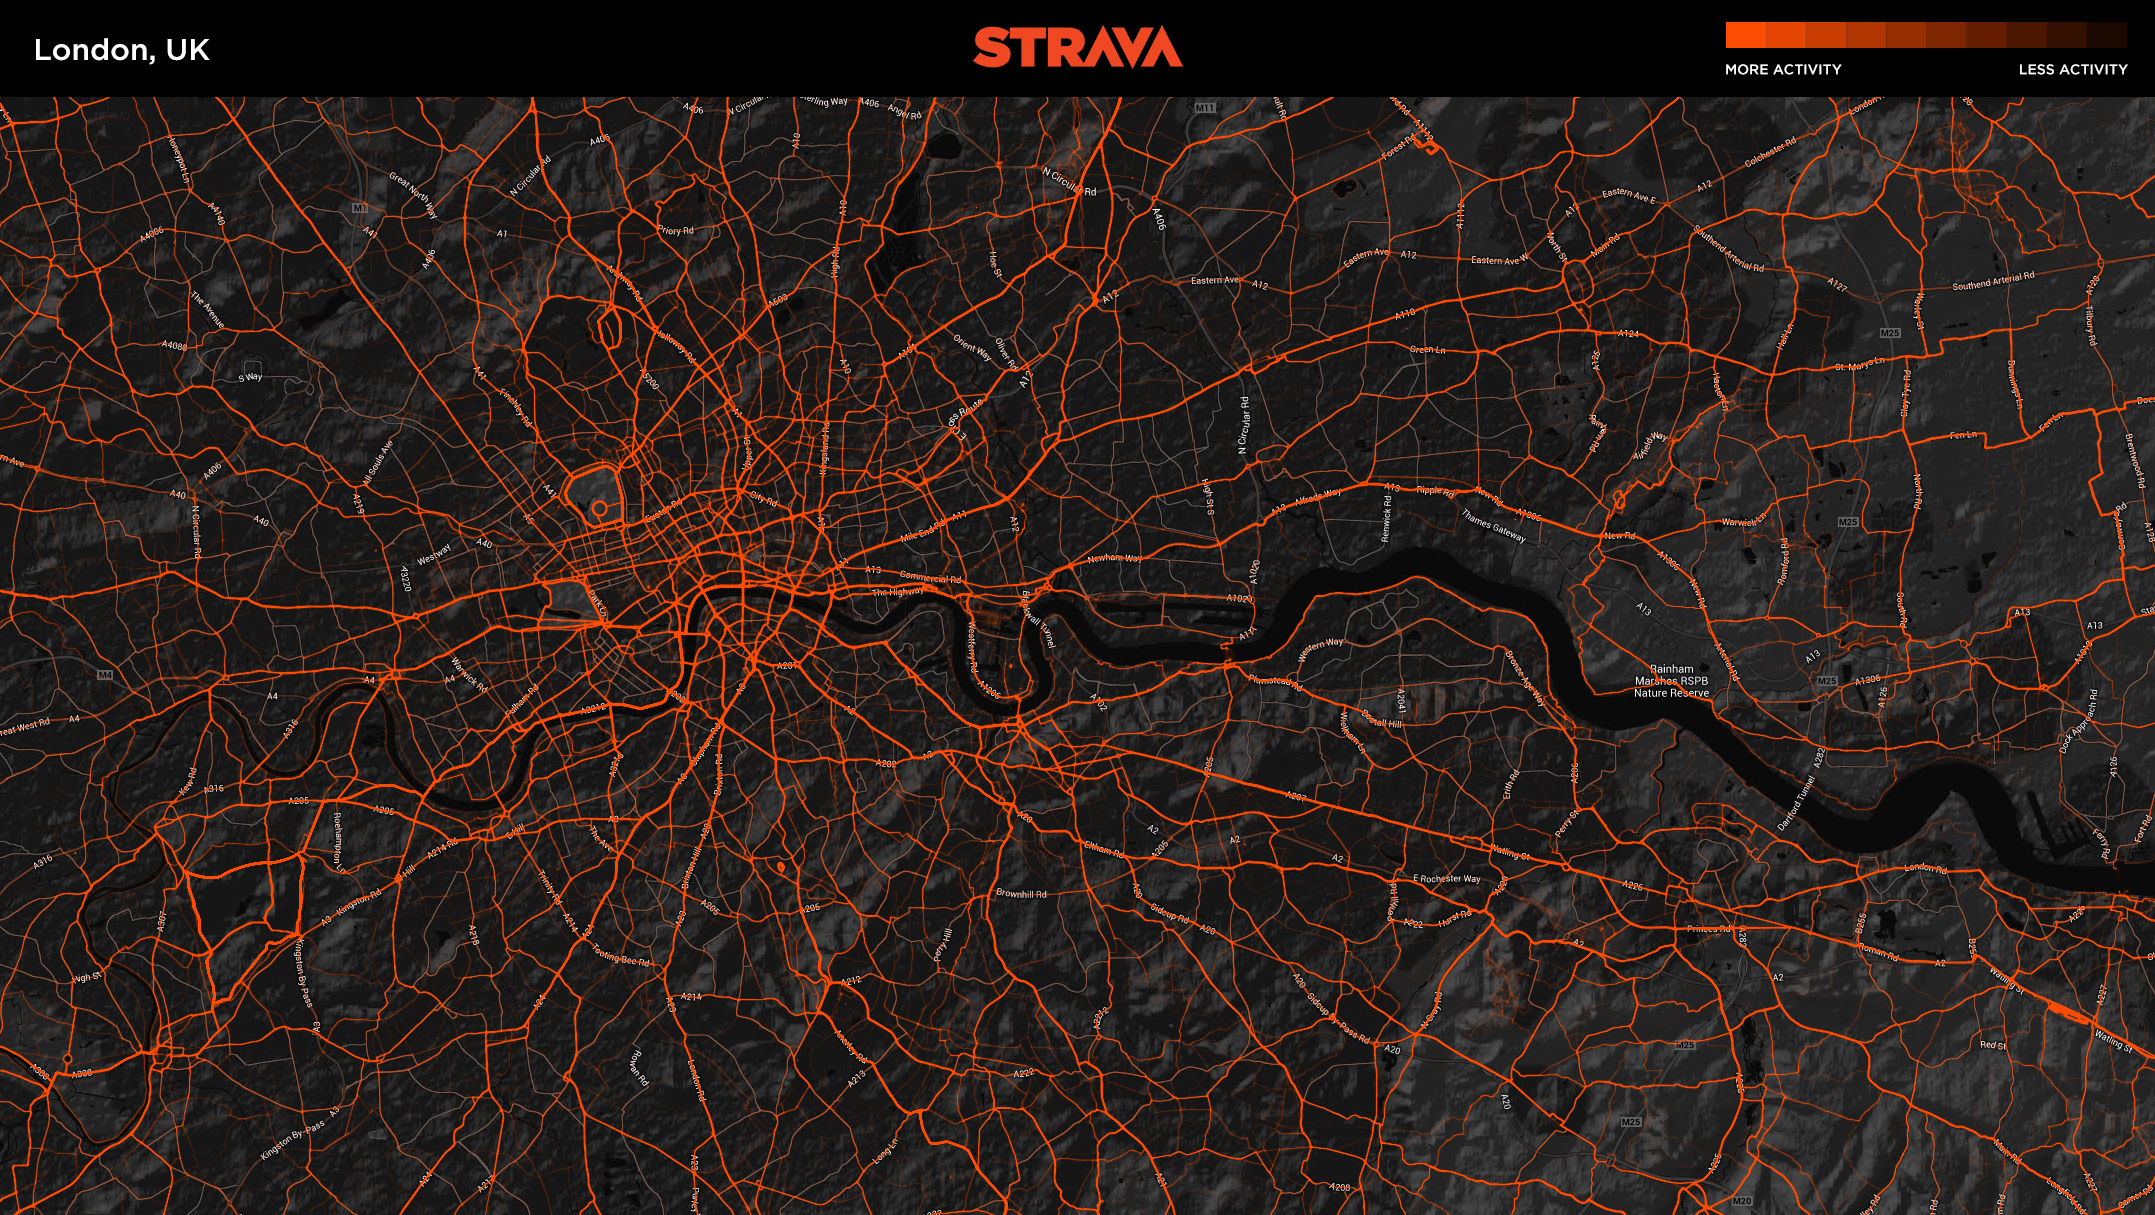 Strava To License Activity Data To Advocates And Agencies